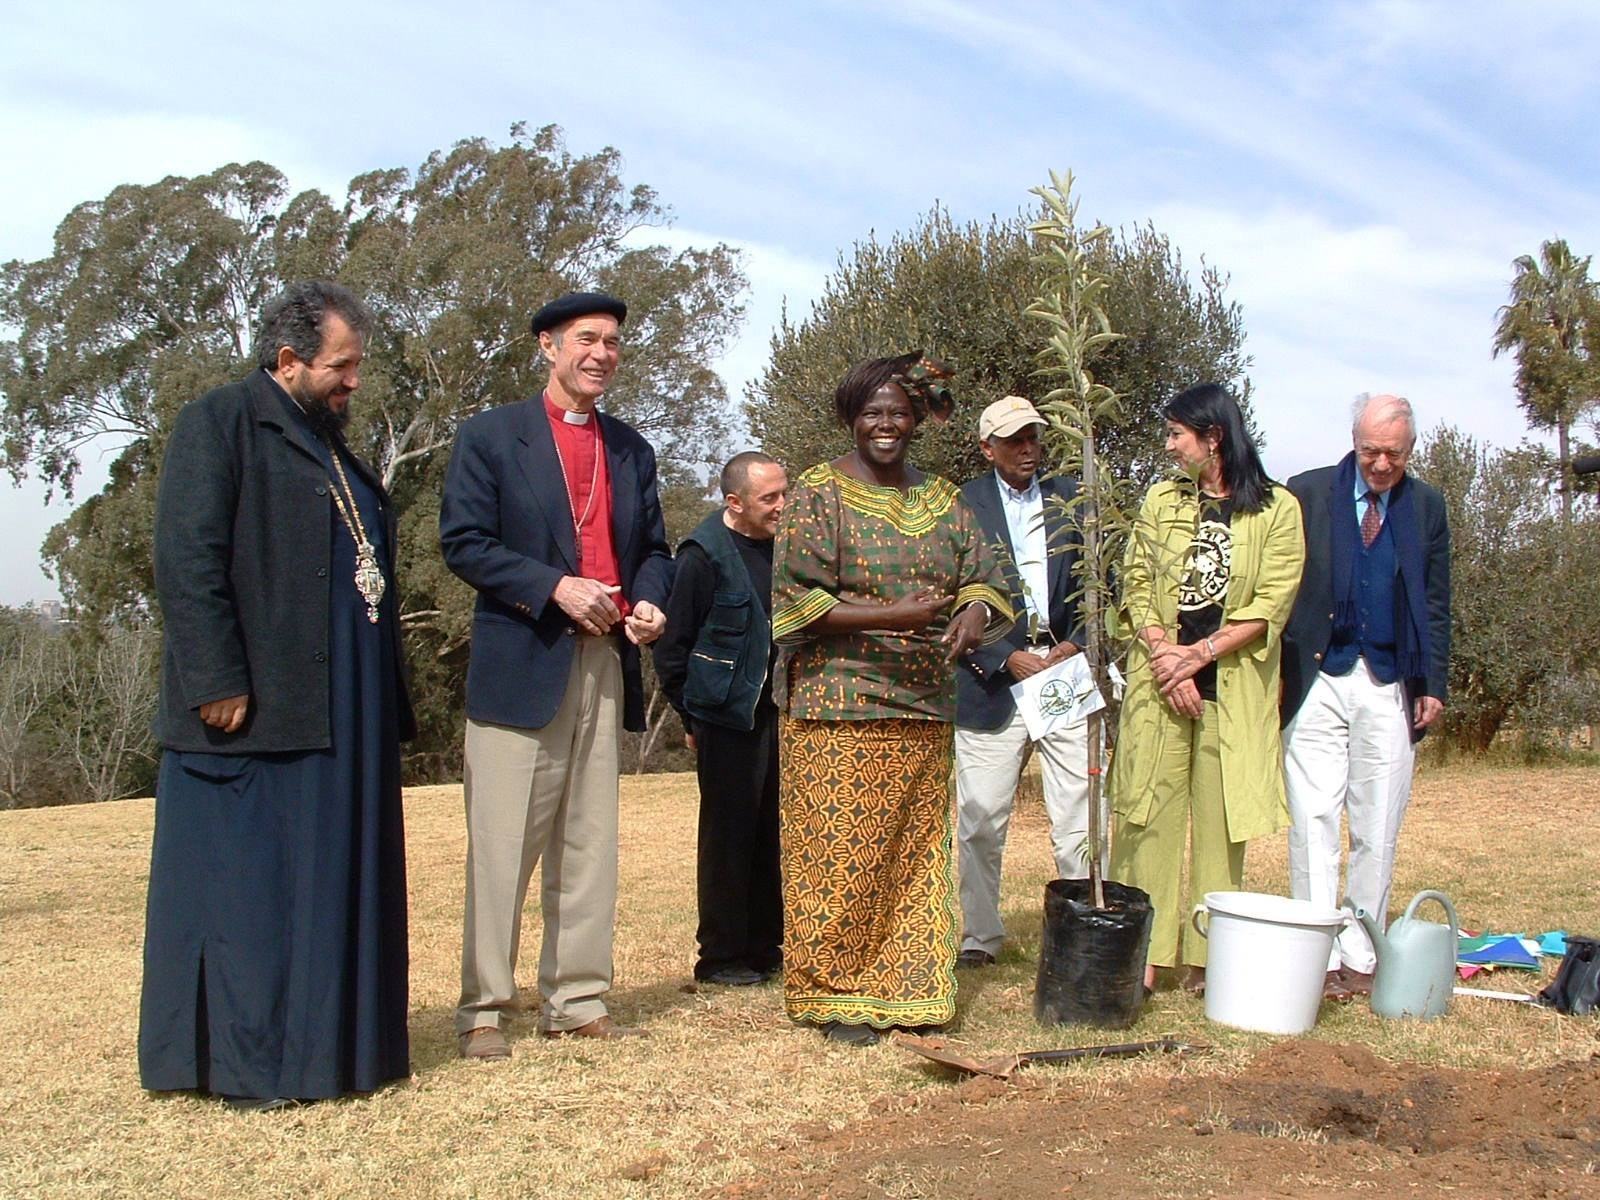 SAFCEI Launch, with Wangari Maathai 20 July 2005